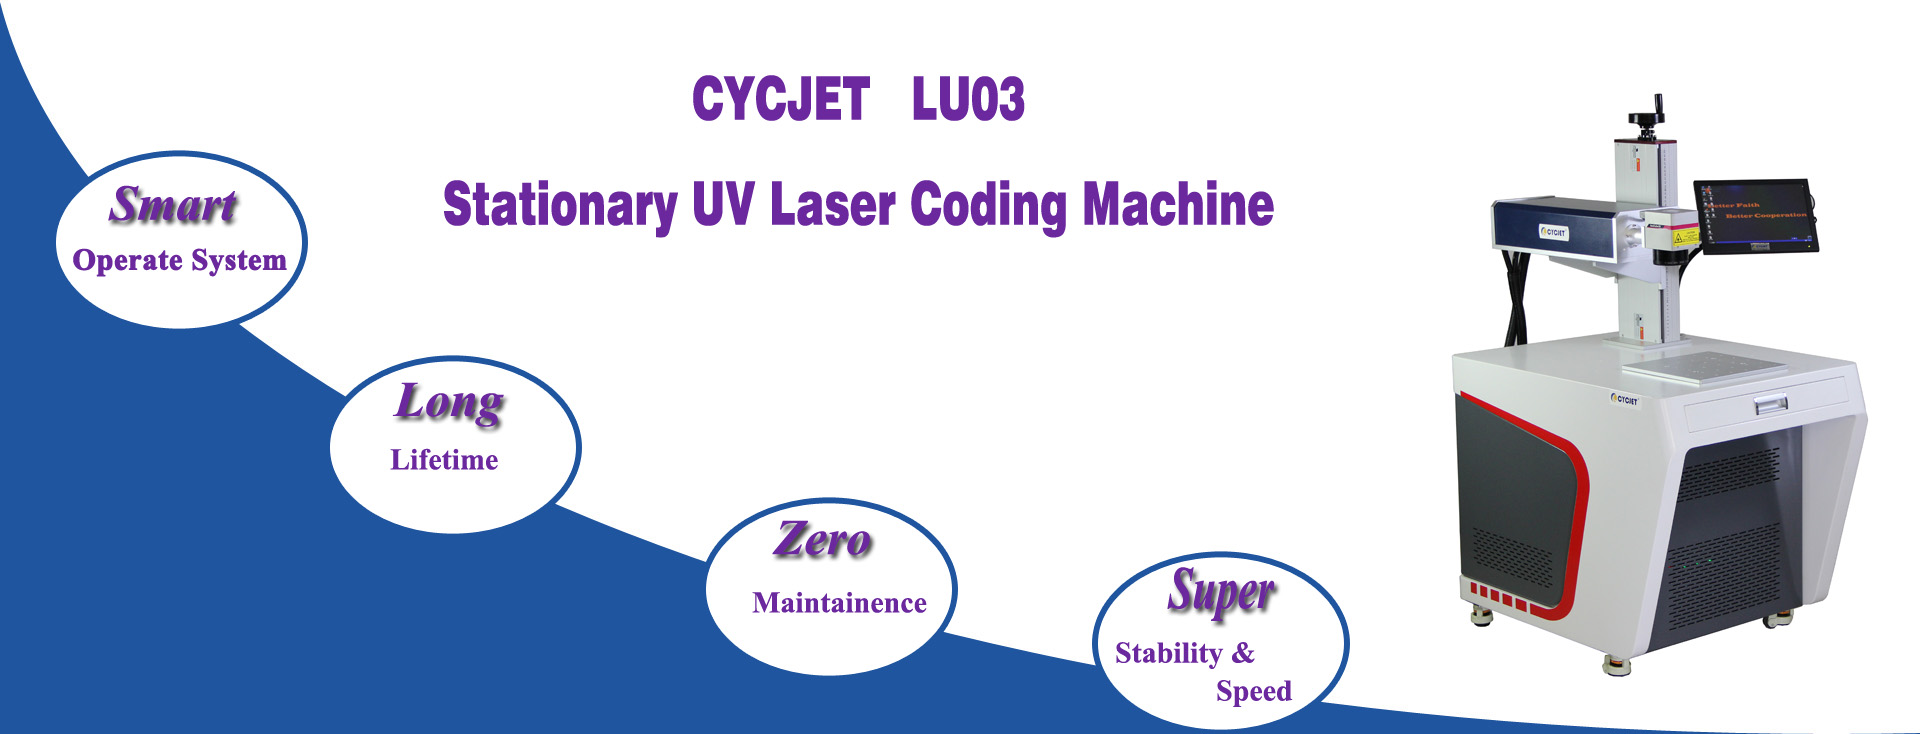 DETAILS OF CYCJET UV LASER PRINTER-LU03.jpg